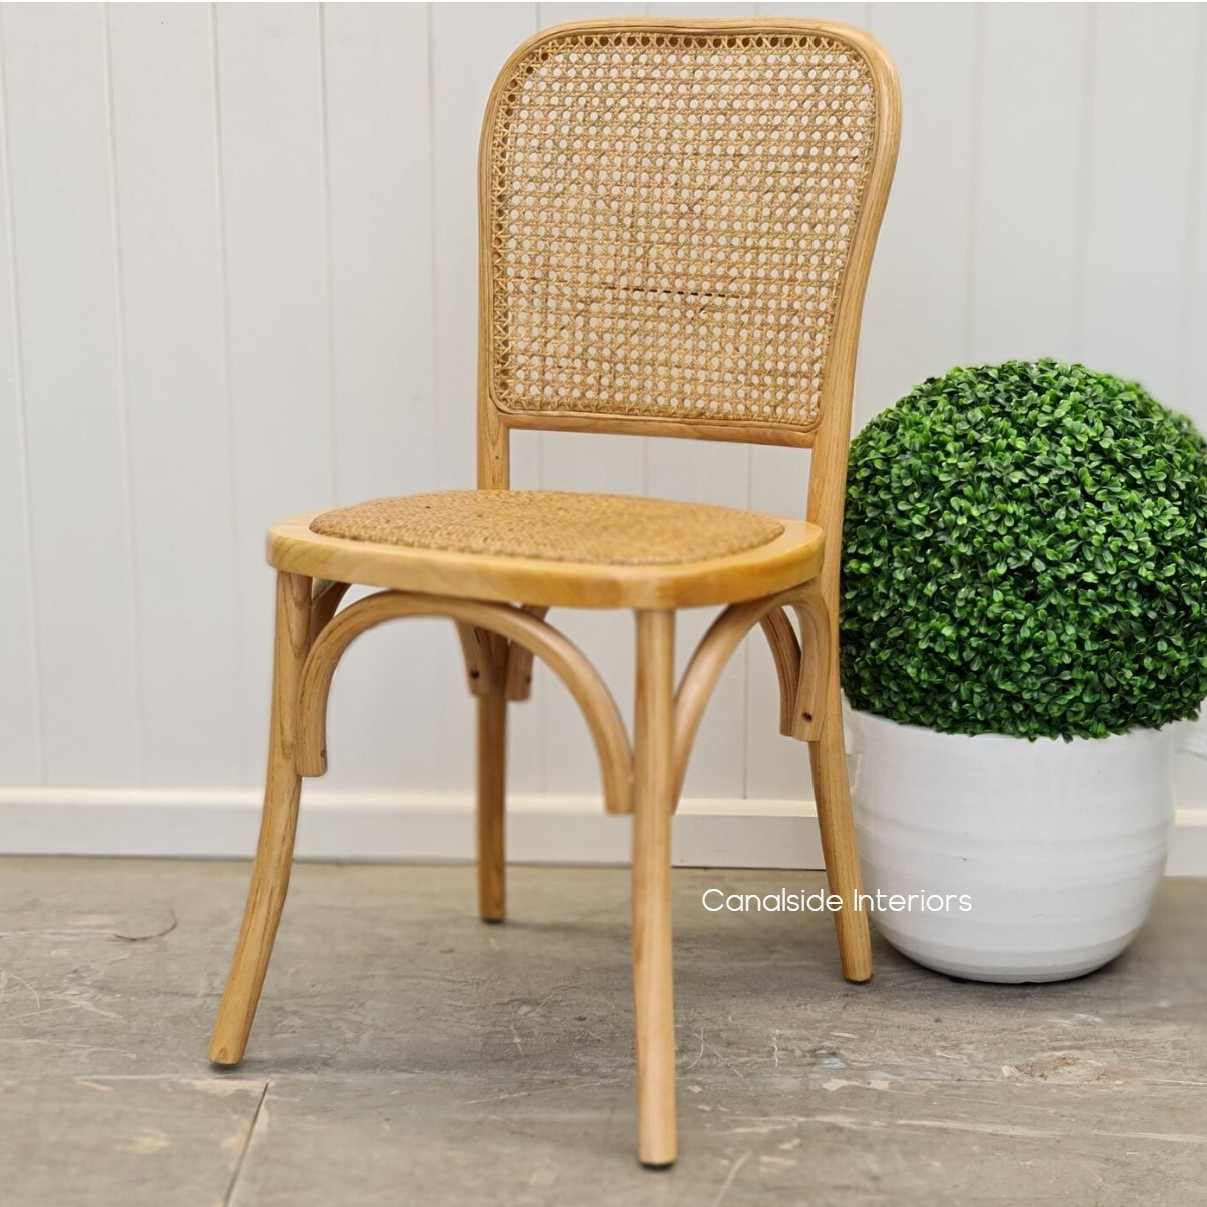 Saxon Bentwood Chair Natural  Dining, CHAIRS, CAFE FURNITURE, HAMPTONS Style, PLANTATION Style, CHAIRS Dining, CAFE FURNITURE Stools & Chairs, PLANTATION STYLE